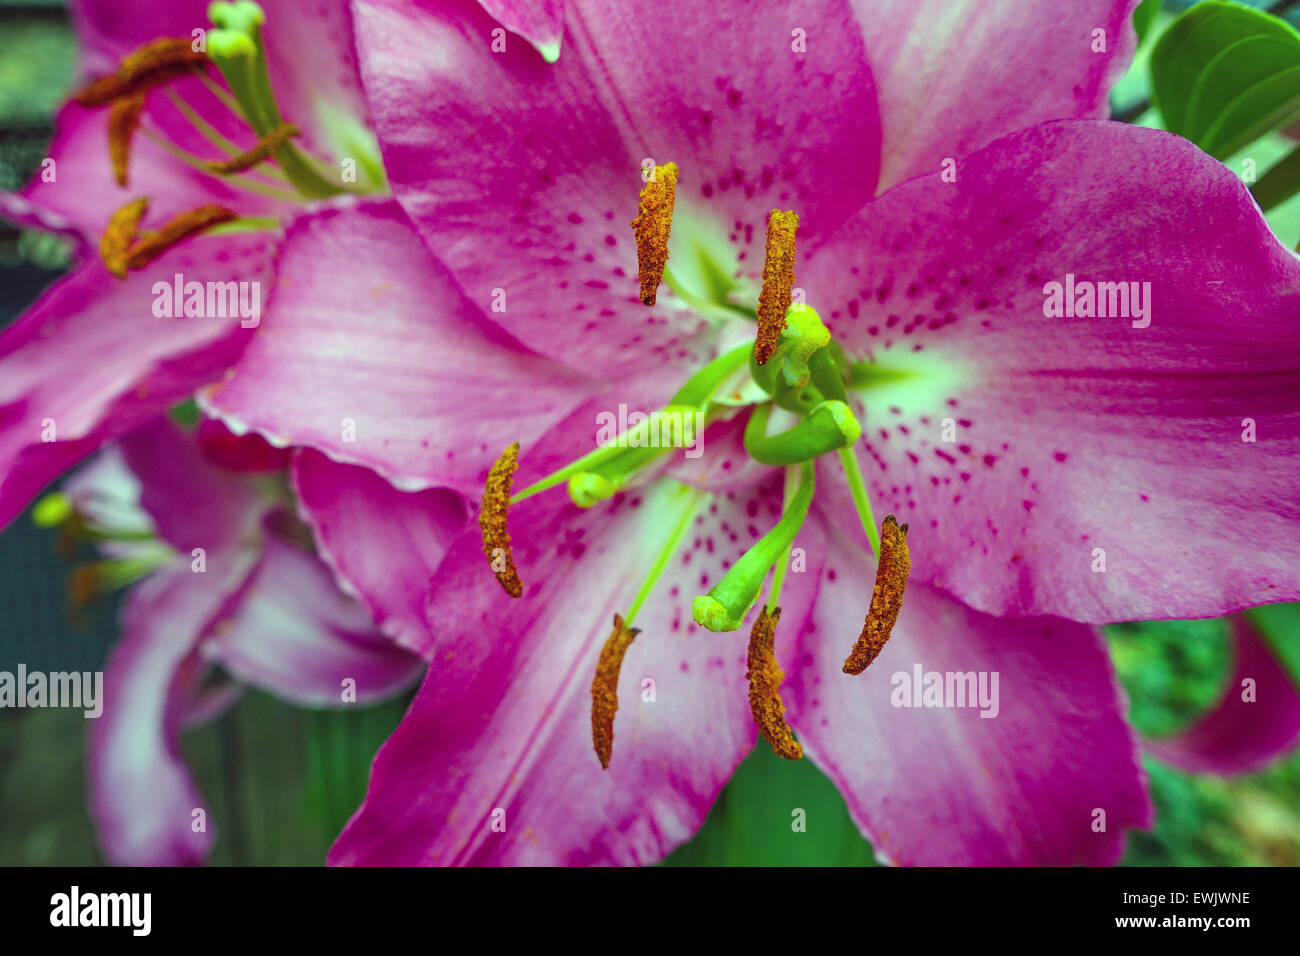 Close up of purple lily flowers with stamens and pollen stock photo close up of purple lily flowers with stamens and pollen izmirmasajfo Gallery